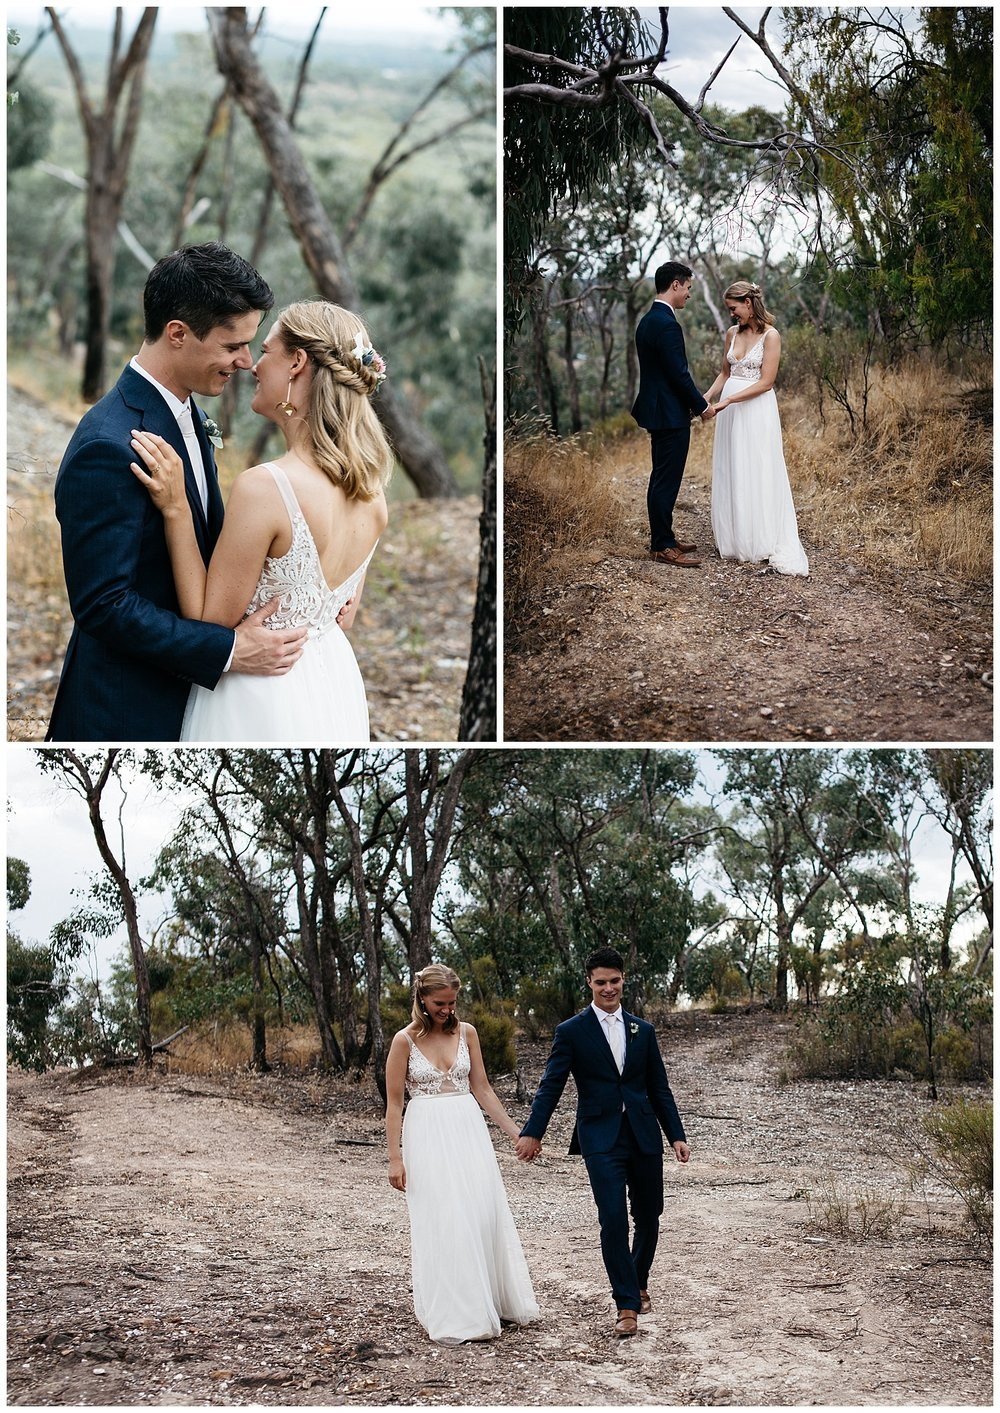 Castelmaine_Melbourne_Wedding_Photographer_0025.jpg